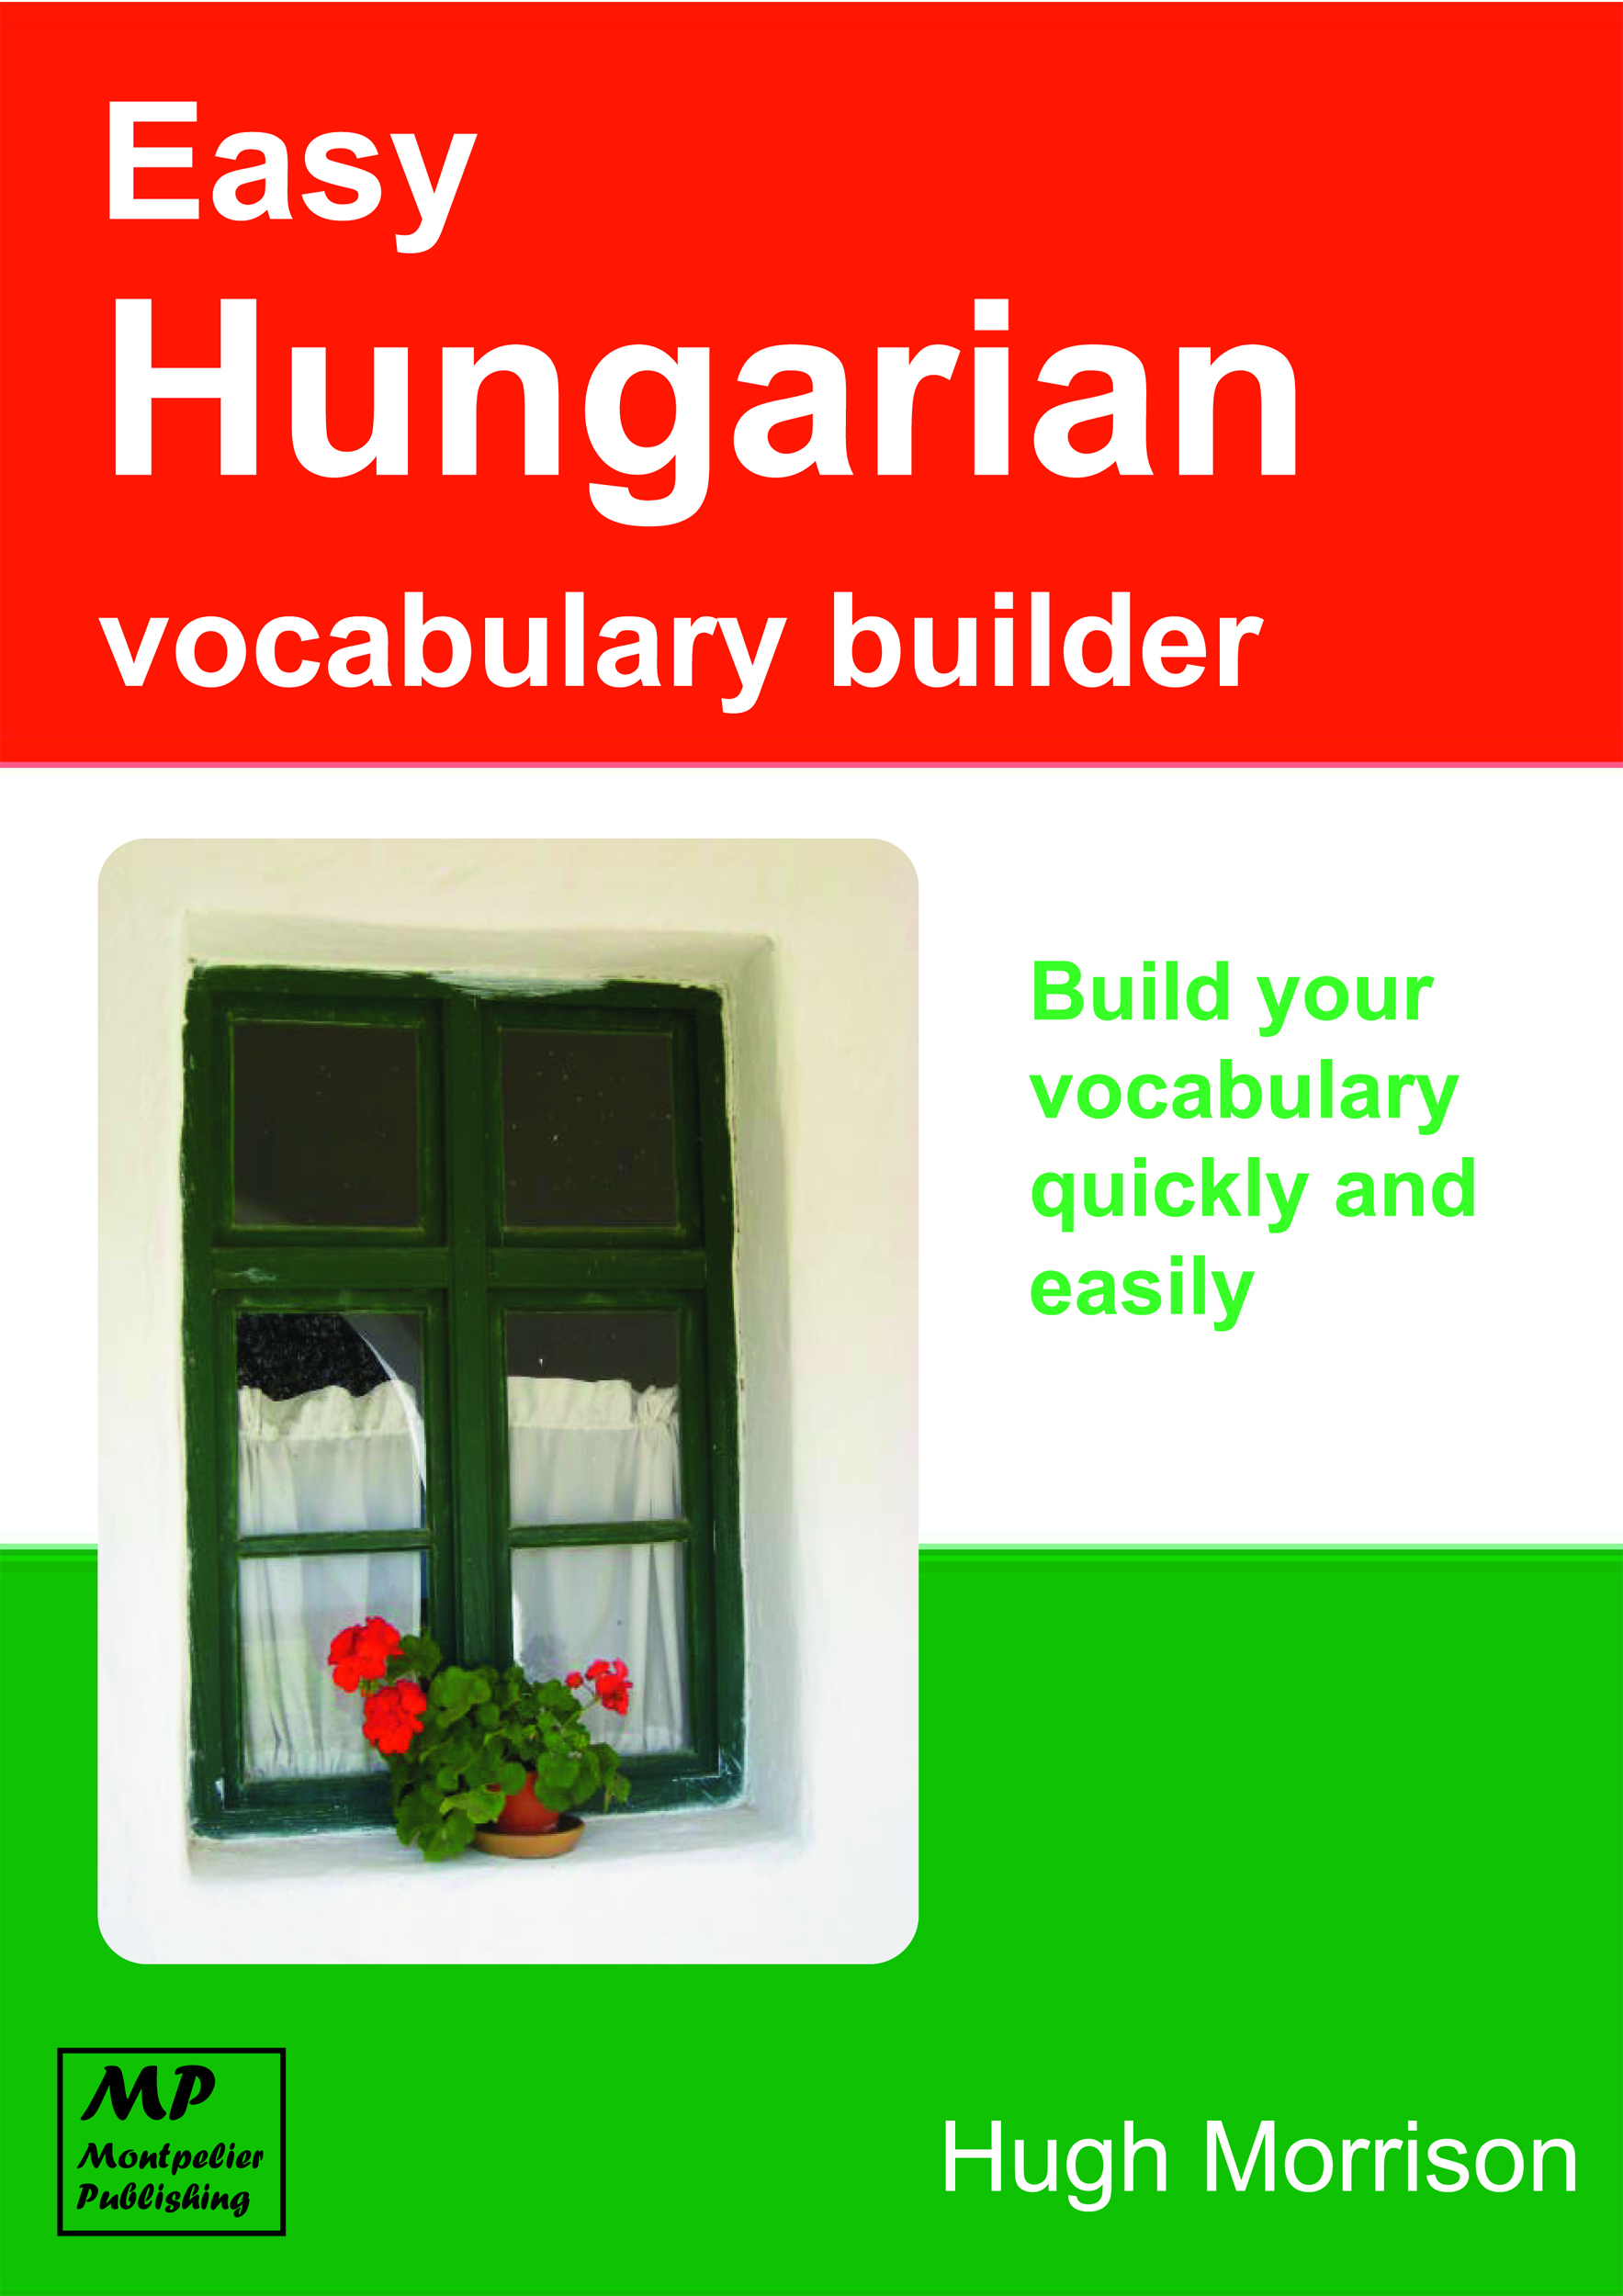 Easy Hungarian Vocabulary Builder